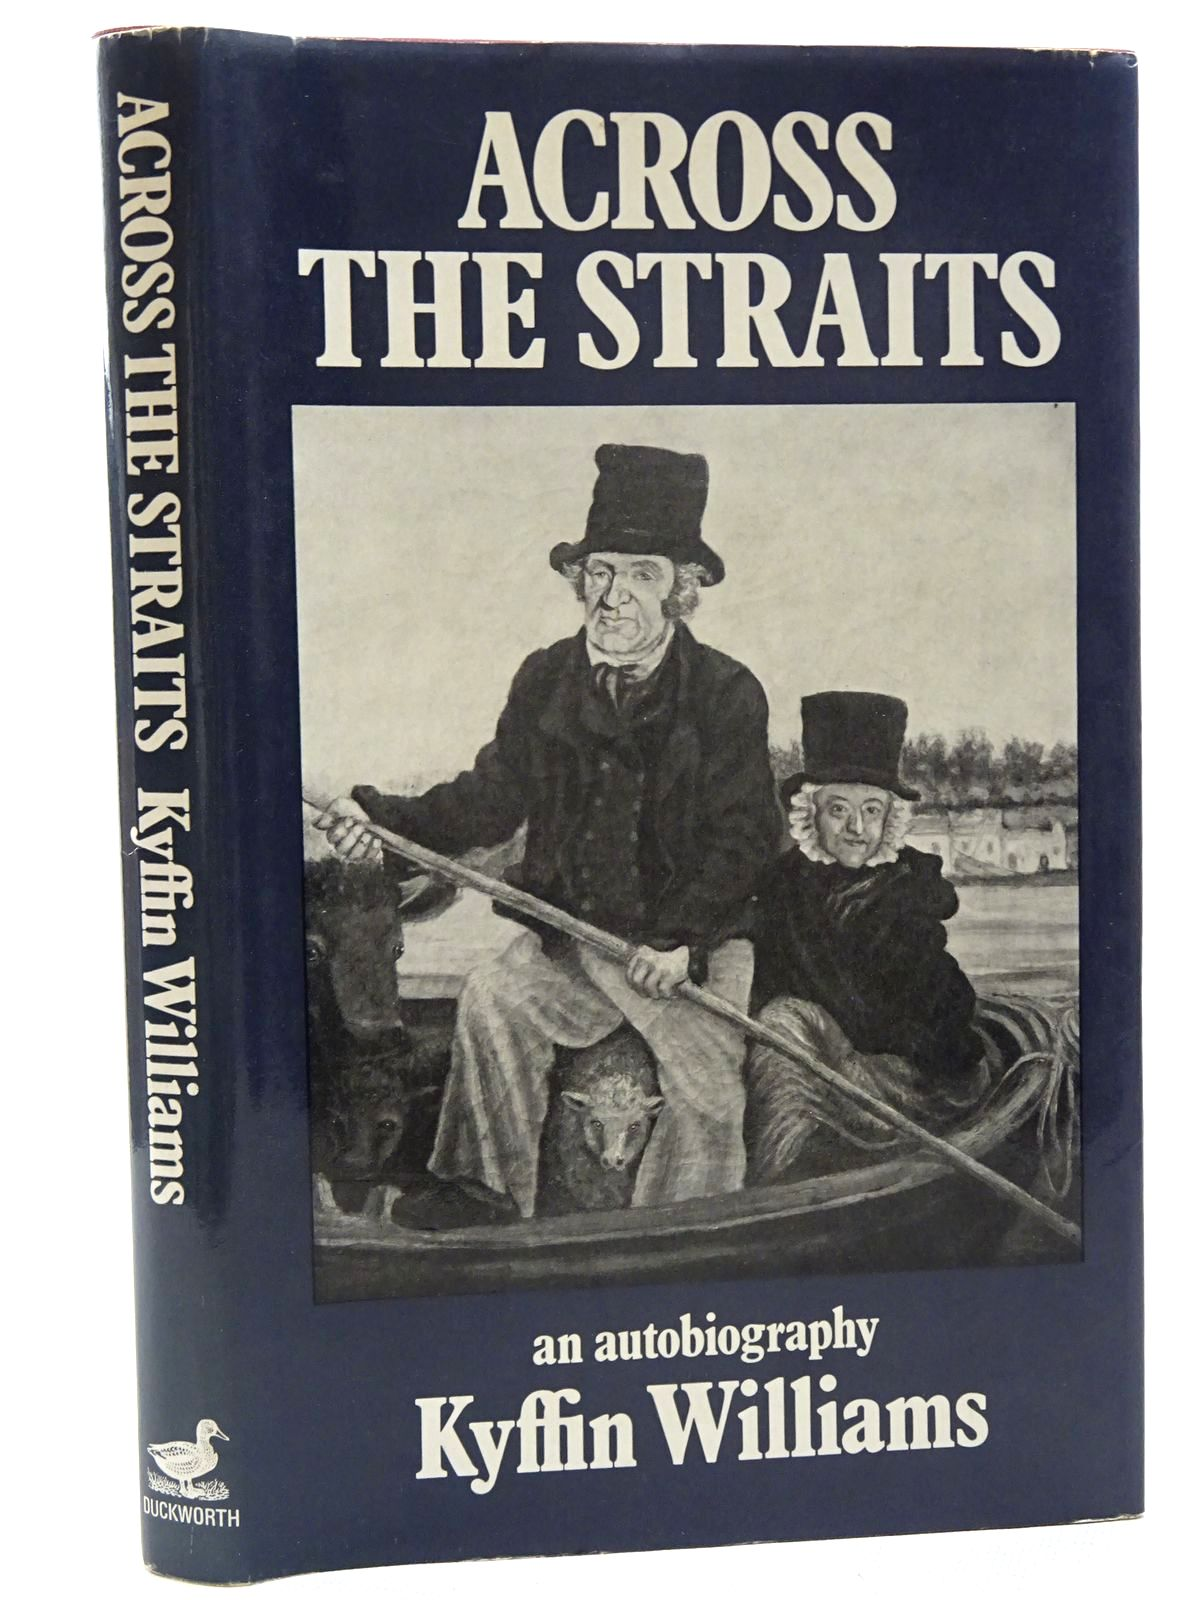 Photo of ACROSS THE STRAITS: AN AUTOBIOGRAPHY written by Williams, Kyffin illustrated by Williams, Kyffin published by Duckworth (STOCK CODE: 1816046)  for sale by Stella & Rose's Books